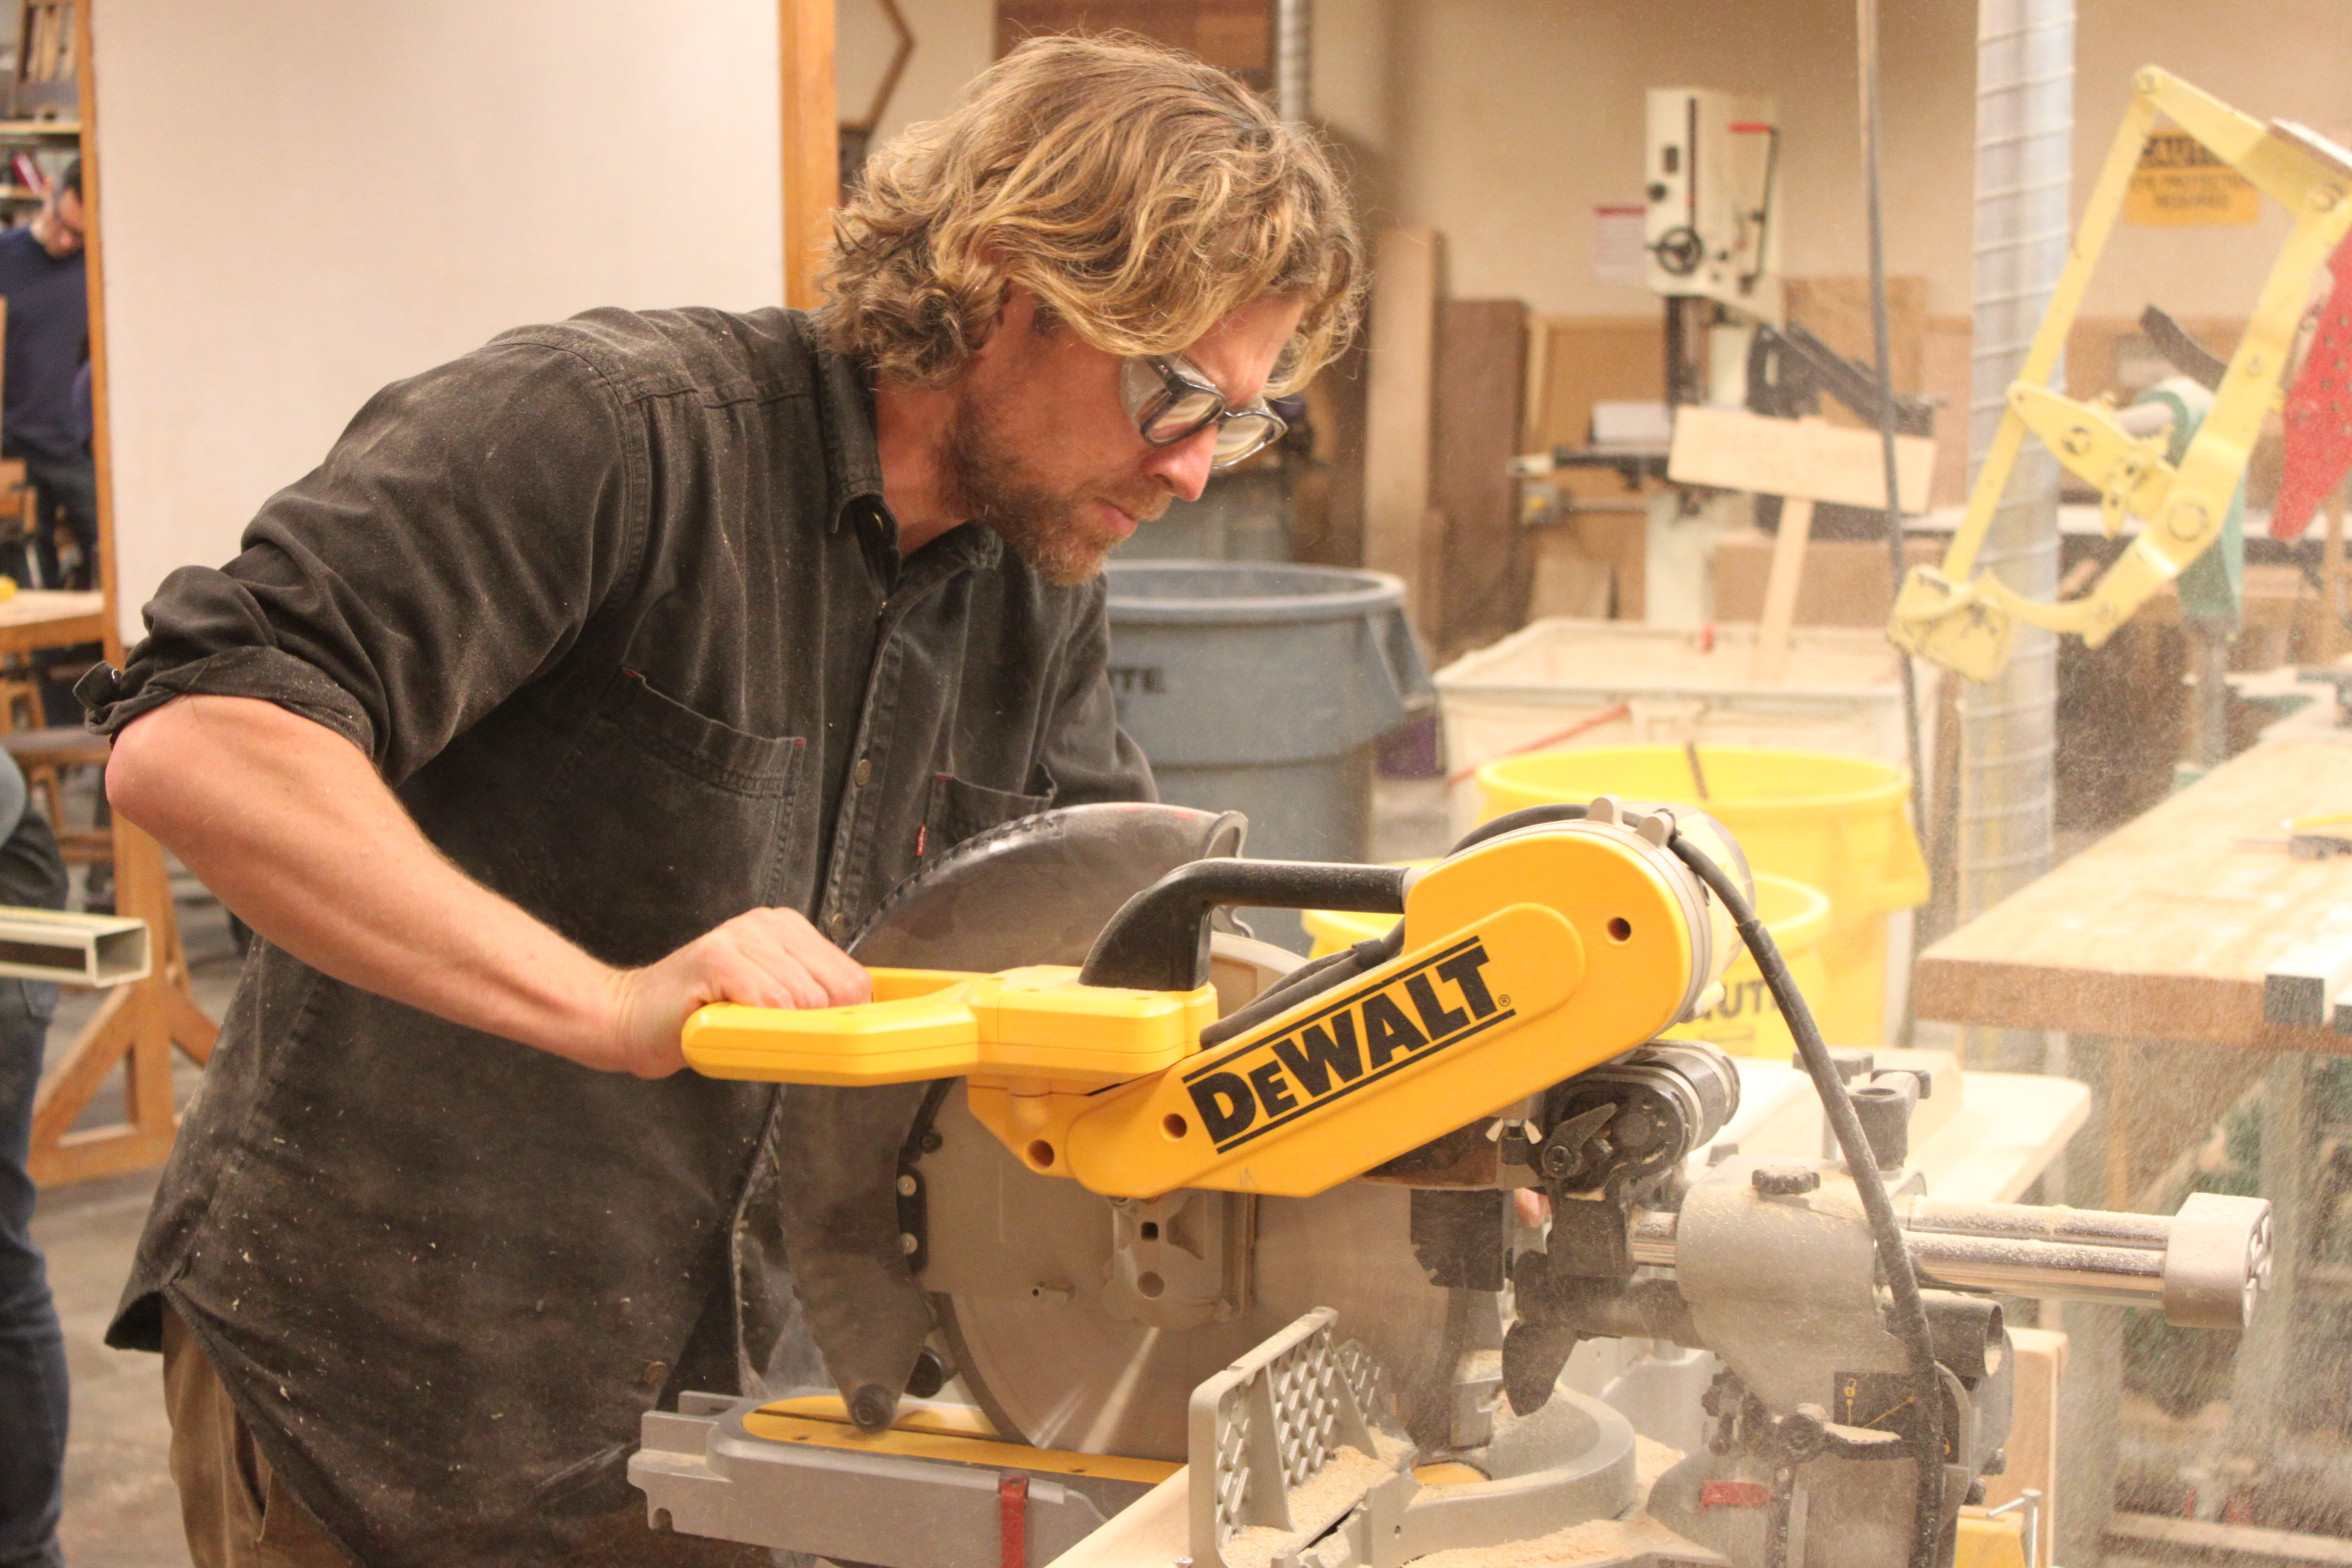 Sawdust flies as industrial design major, Trevor Rogers, works on cabinets for his apartment using a compound miter saw. Photo taken on Oct. 27, 2017.